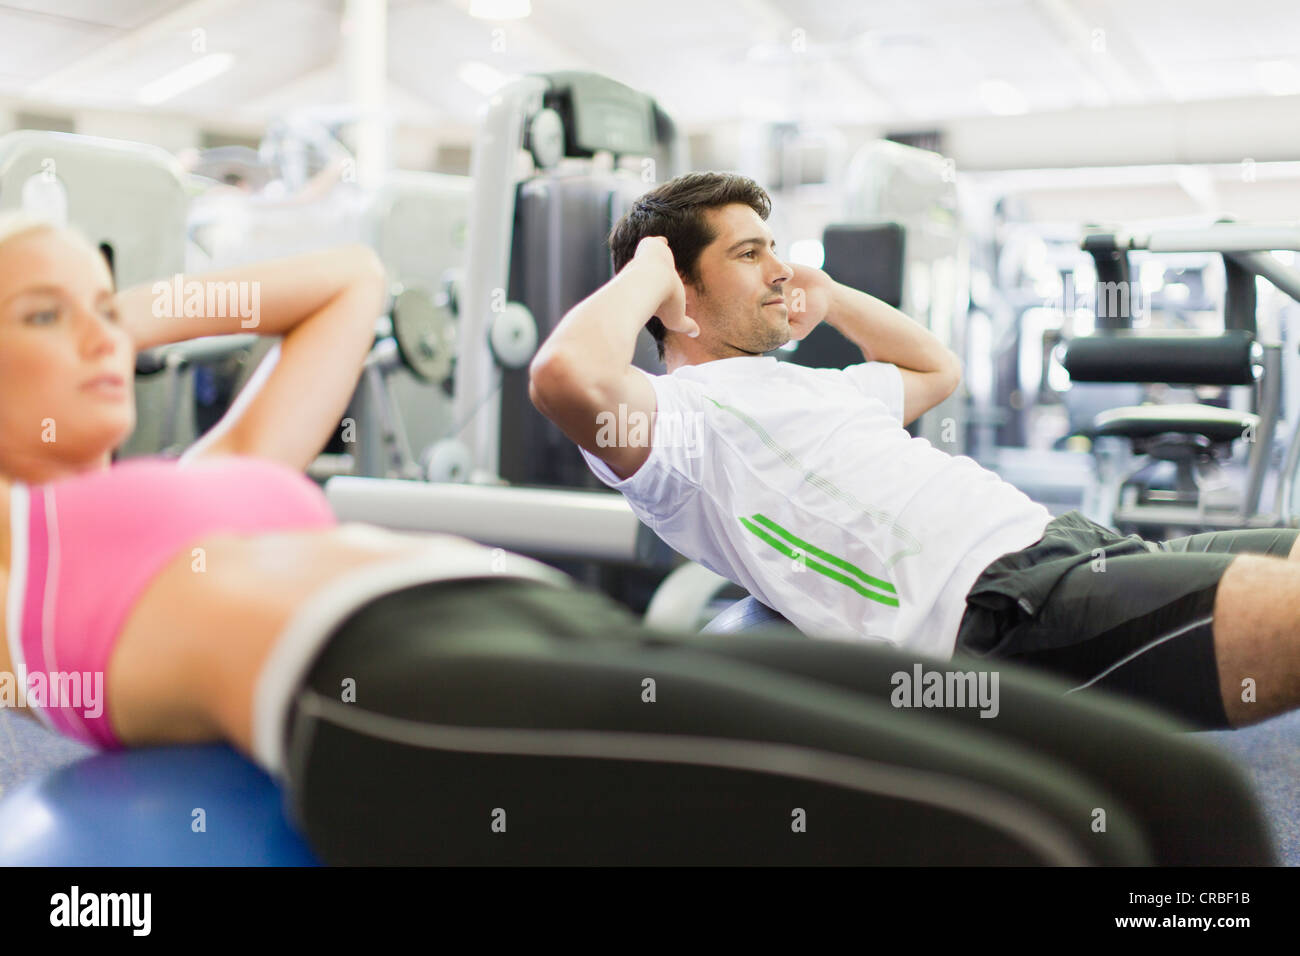 Couple working out together in gym - Stock Image